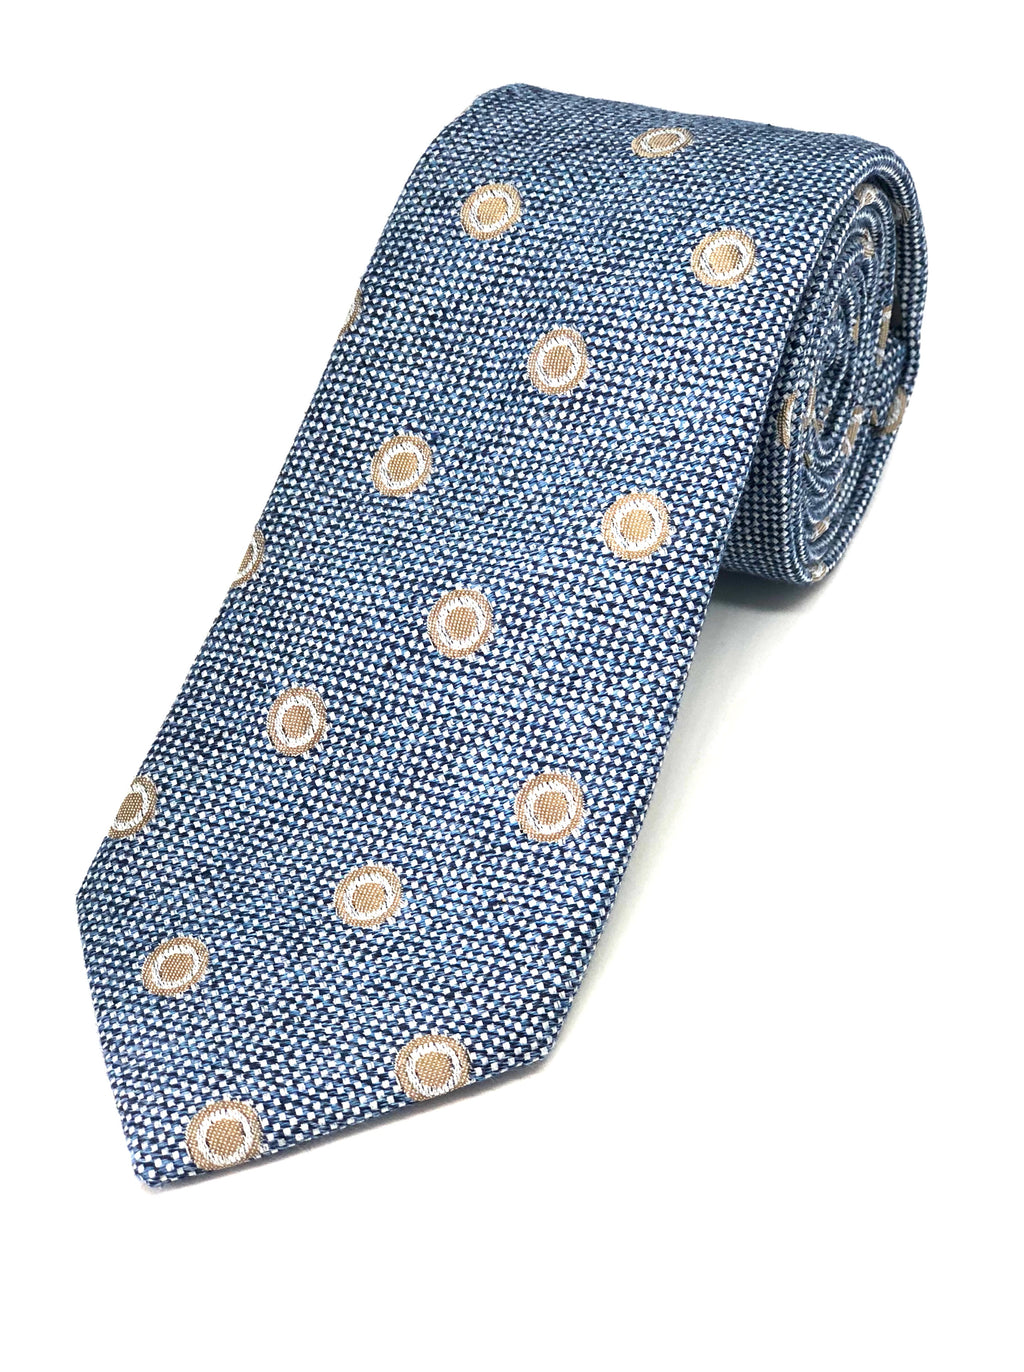 Textured Tie - Blue with Biscuit Circles